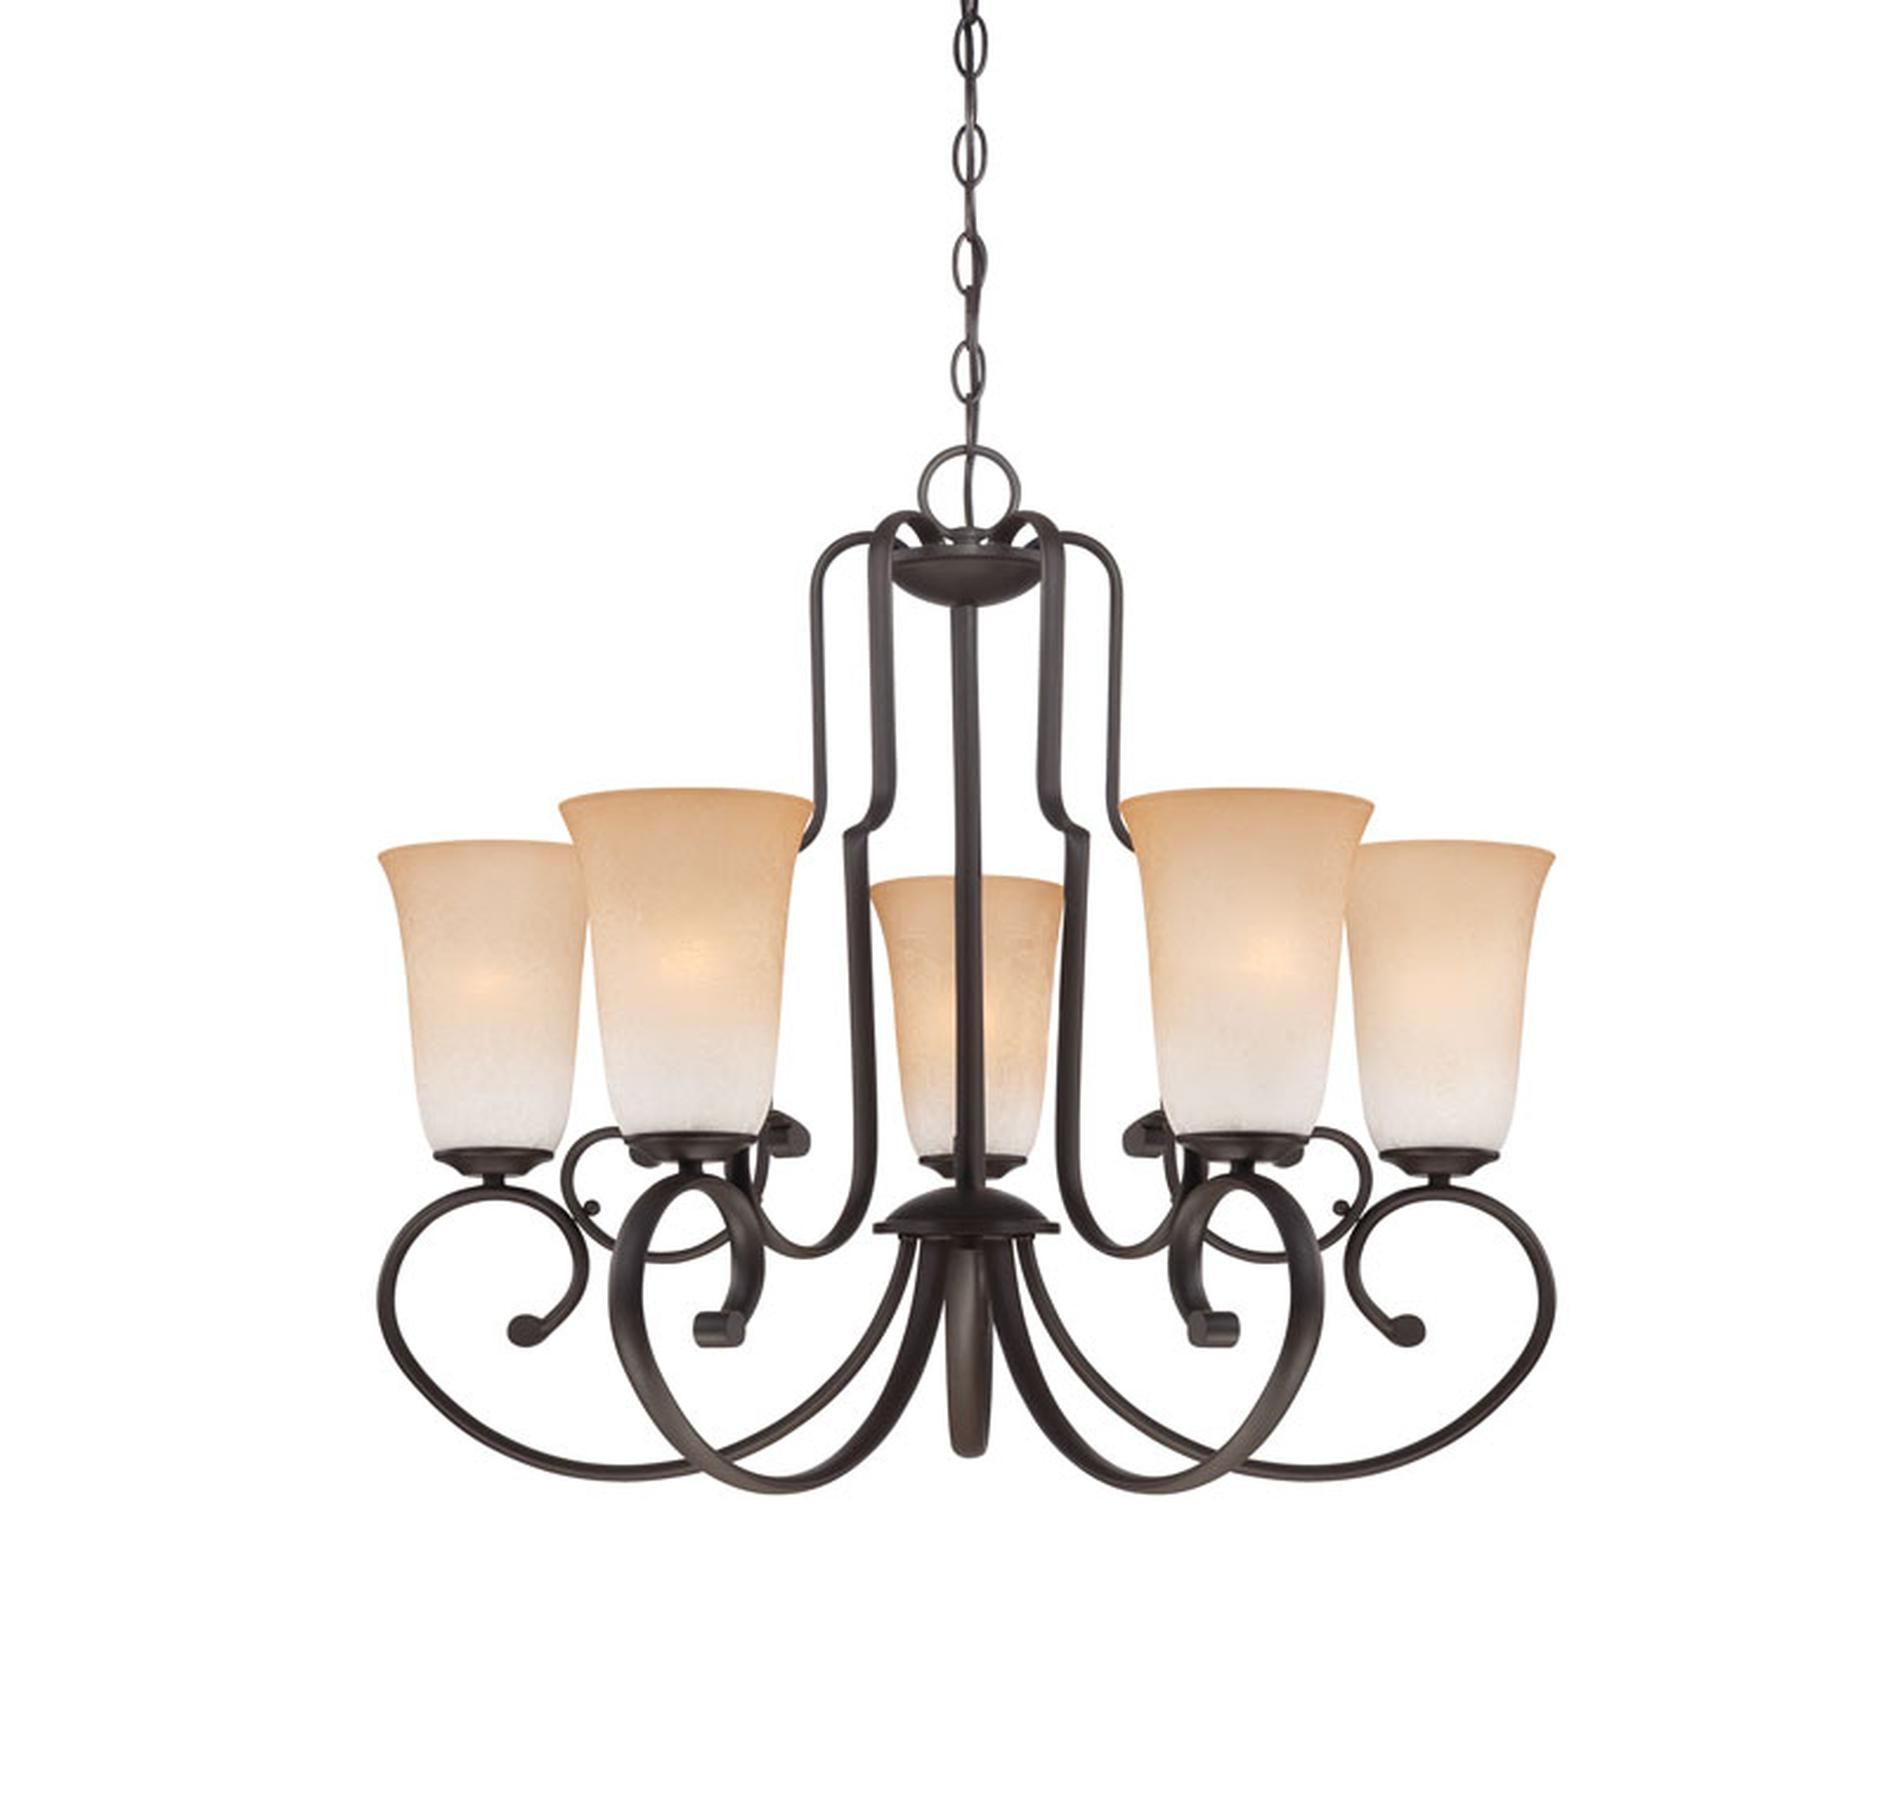 Quoizel Symphony 5 Light Chandelier In Old Bronze Finish Other Clearance All